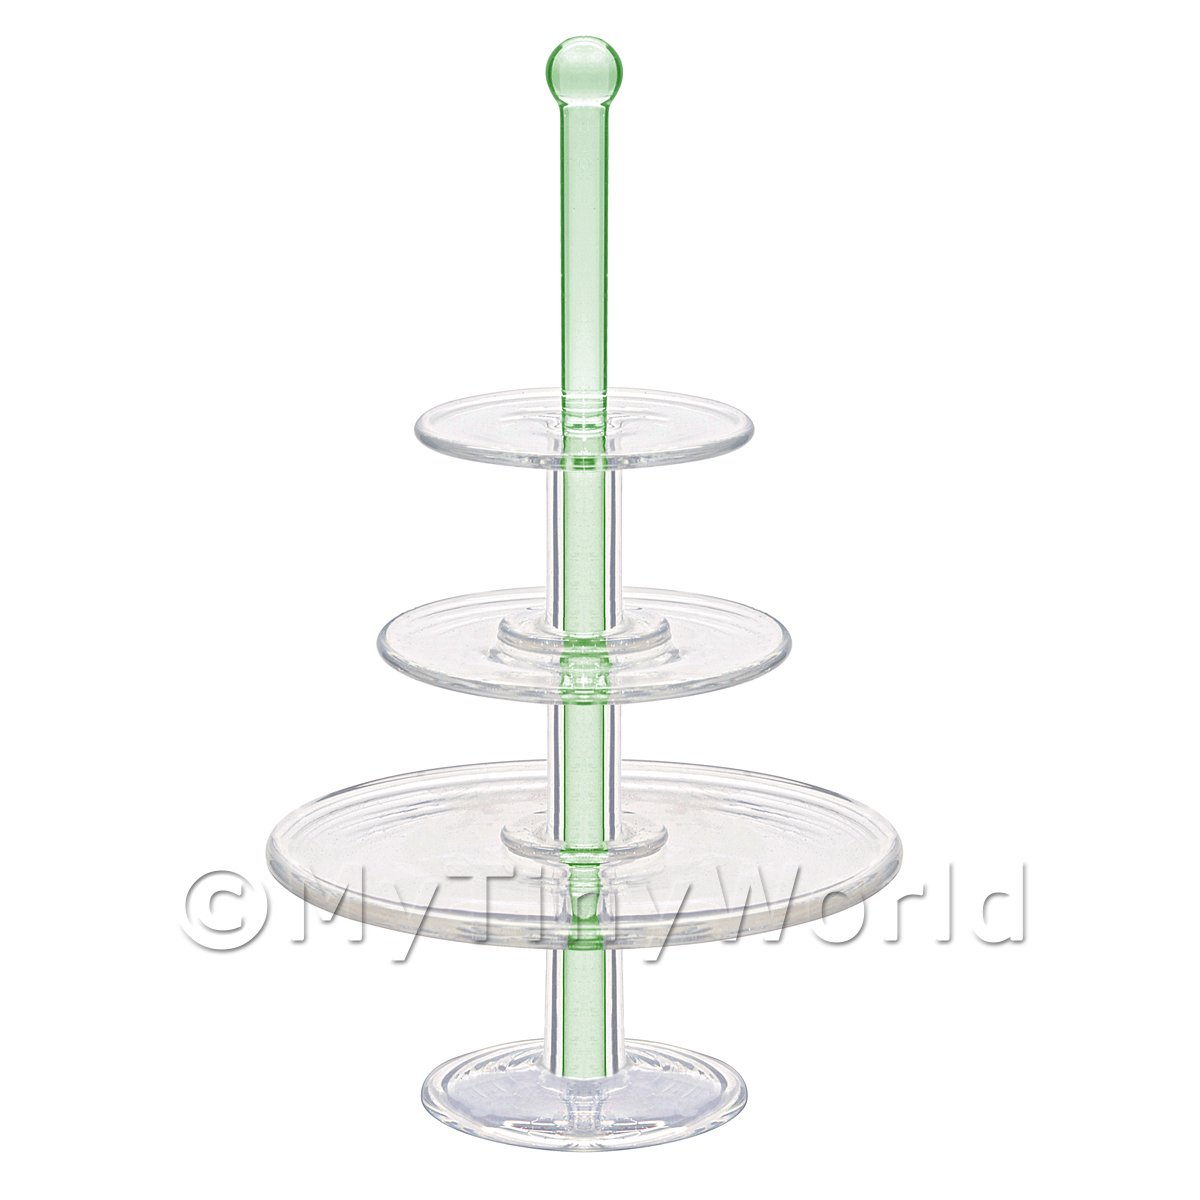 Dolls House Miniature Handmade Large Green 3 Tier Glass Cake Stand